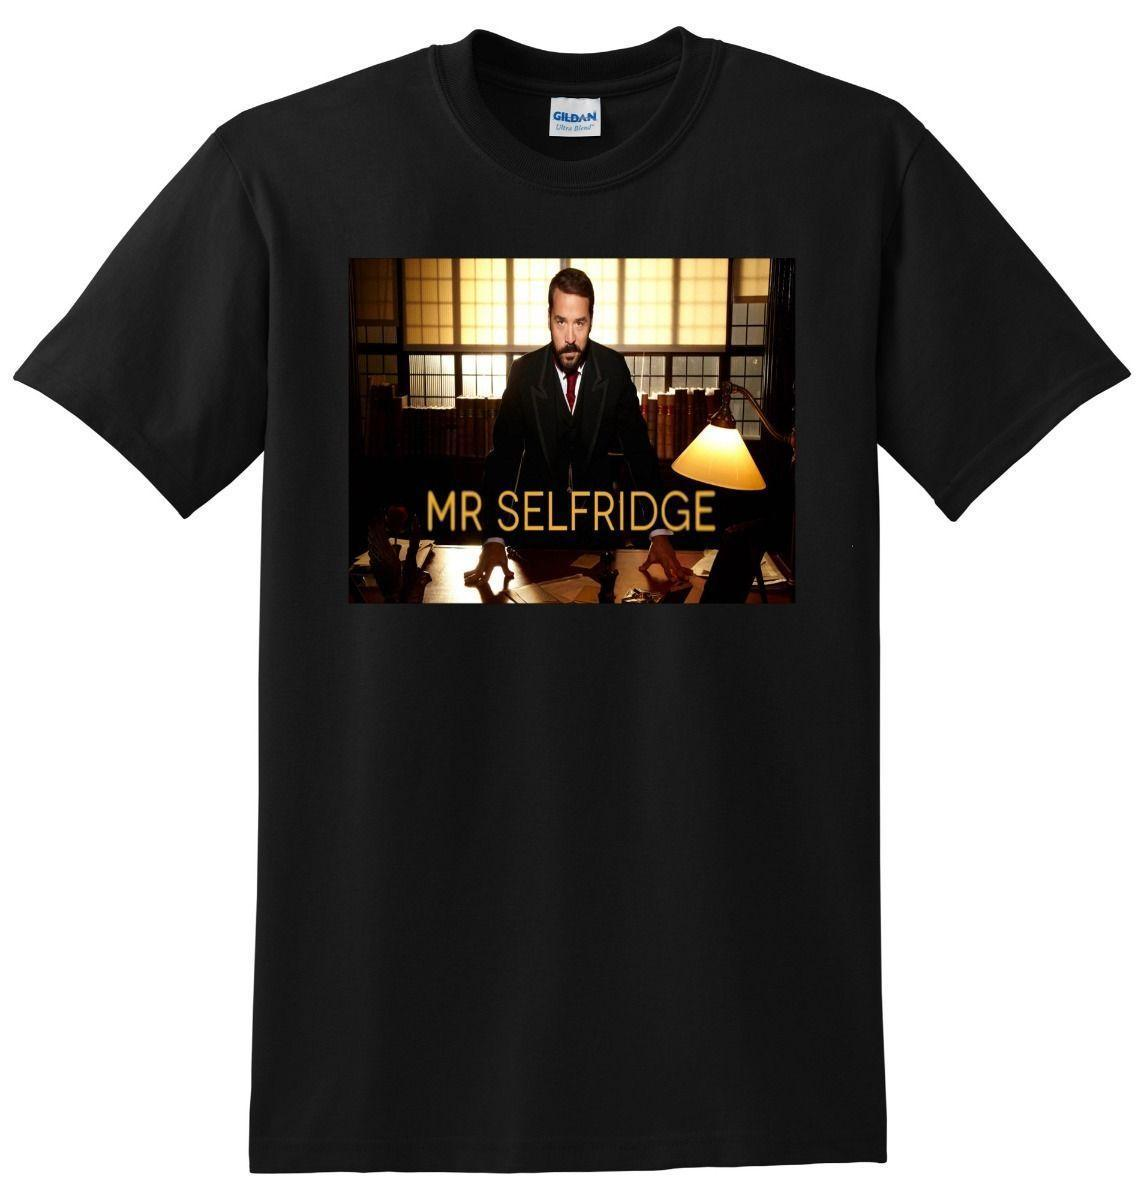 892f0933804 ** MR SELFRIDGE T SHIRT Season 1 2 3 SMALL MEDIUM LARGE Or XL Adult Sizes Mens  T Shirt Summer O Neck 100% Cotton Men Short Sleeve Buy T Shirt Designs ...